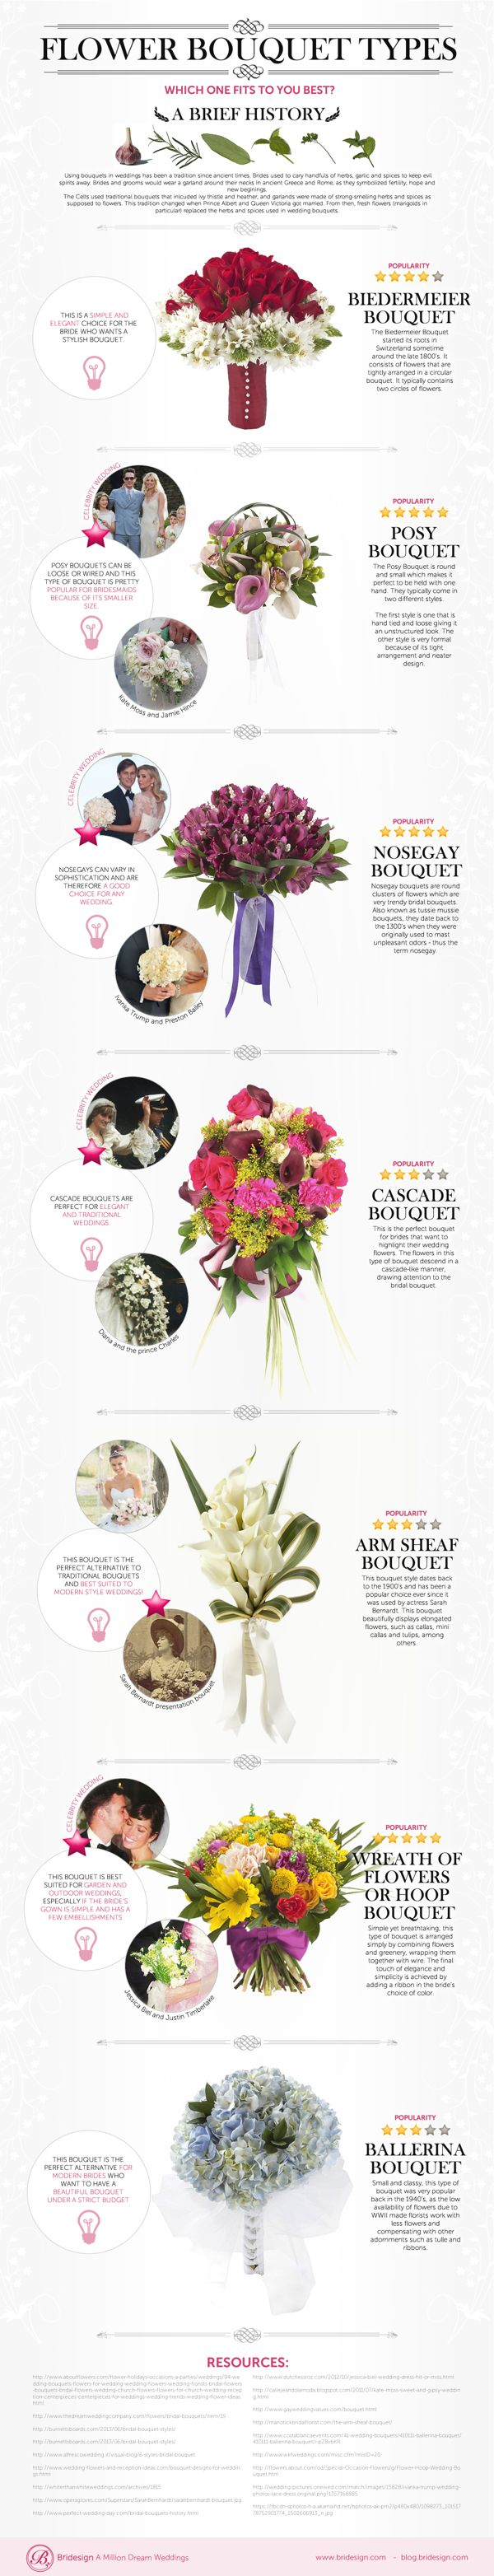 best wedding flowers category images on pinterest floral